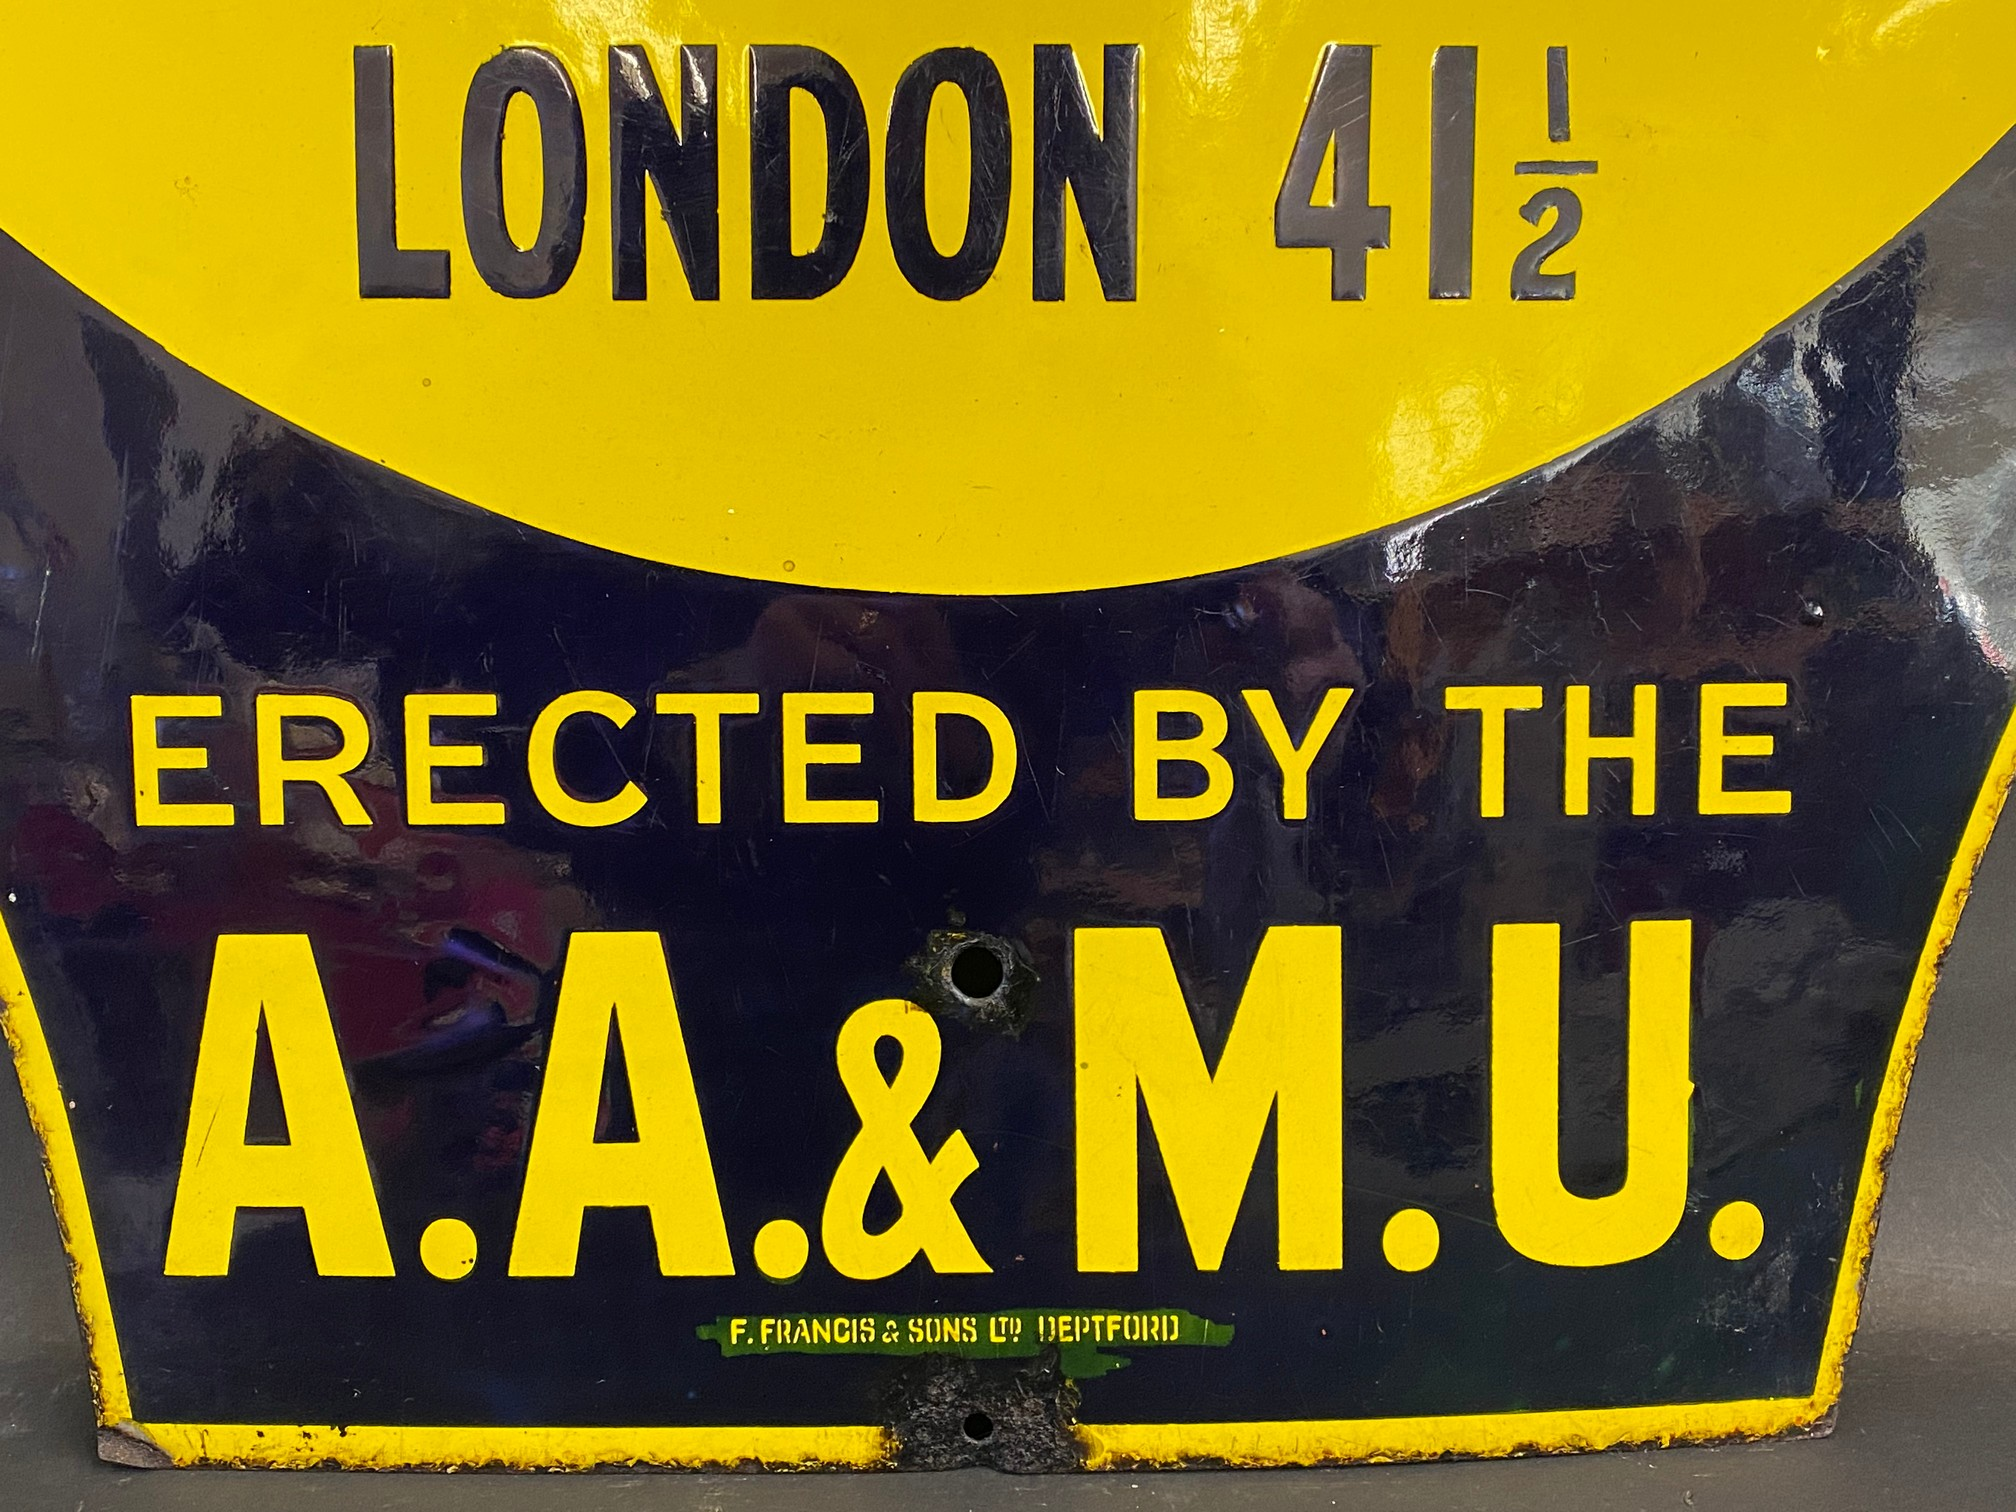 An early AA and Motor Union enamel location sign for Howlett End, Saffron Waldon 3 3/4 miles, the - Image 5 of 6